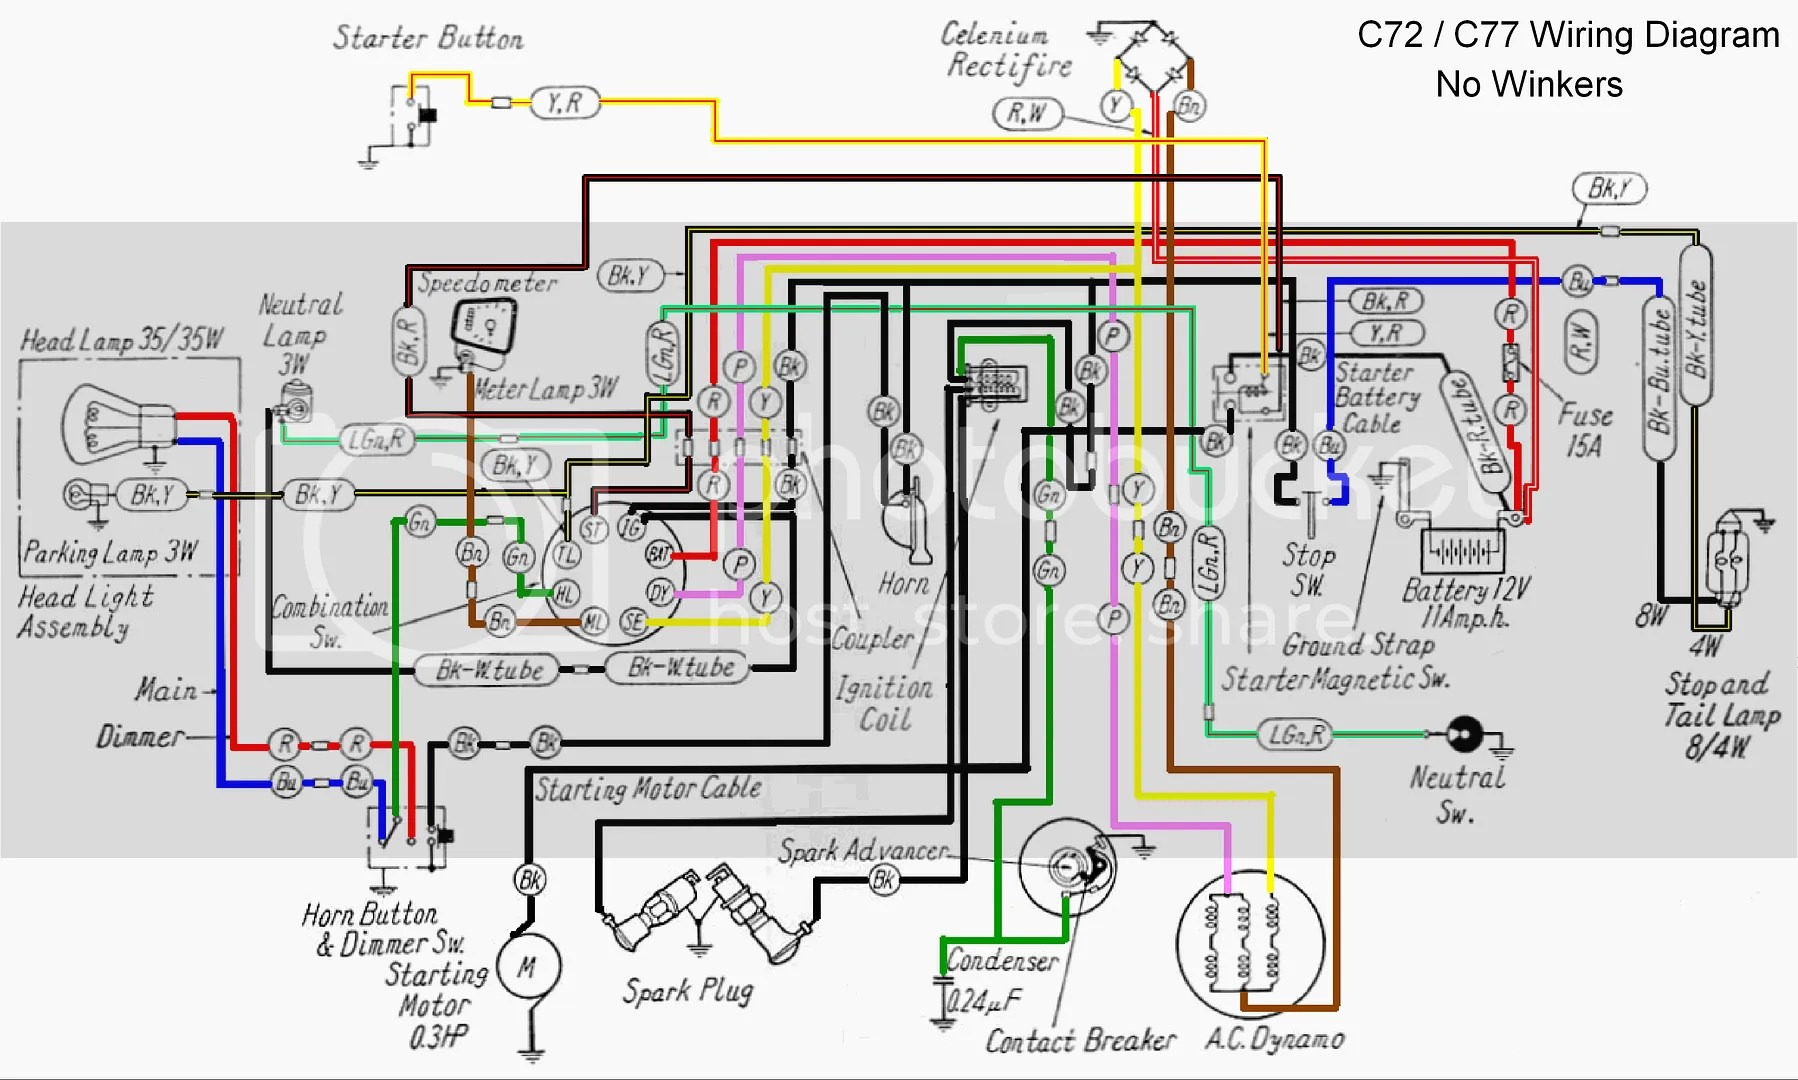 small resolution of i was goofing off at work one day during my lunch hour and i took a ca77 wiring diagram and colorized it helps me see follow the wires much better than